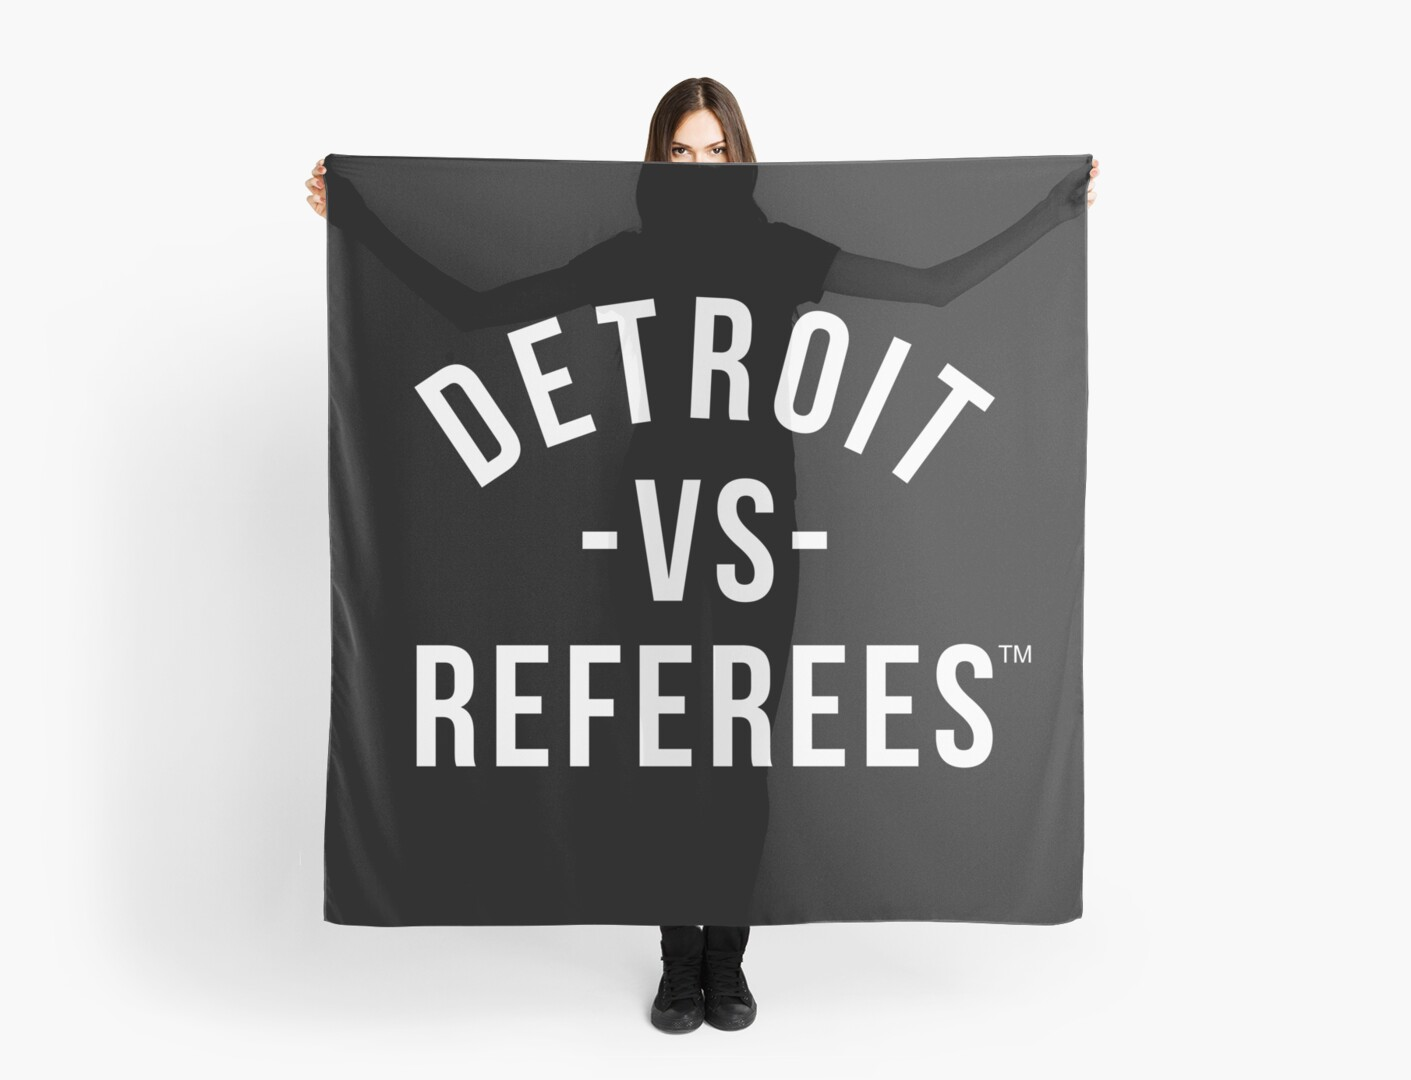 Detroit Versus Referees™ by thedline